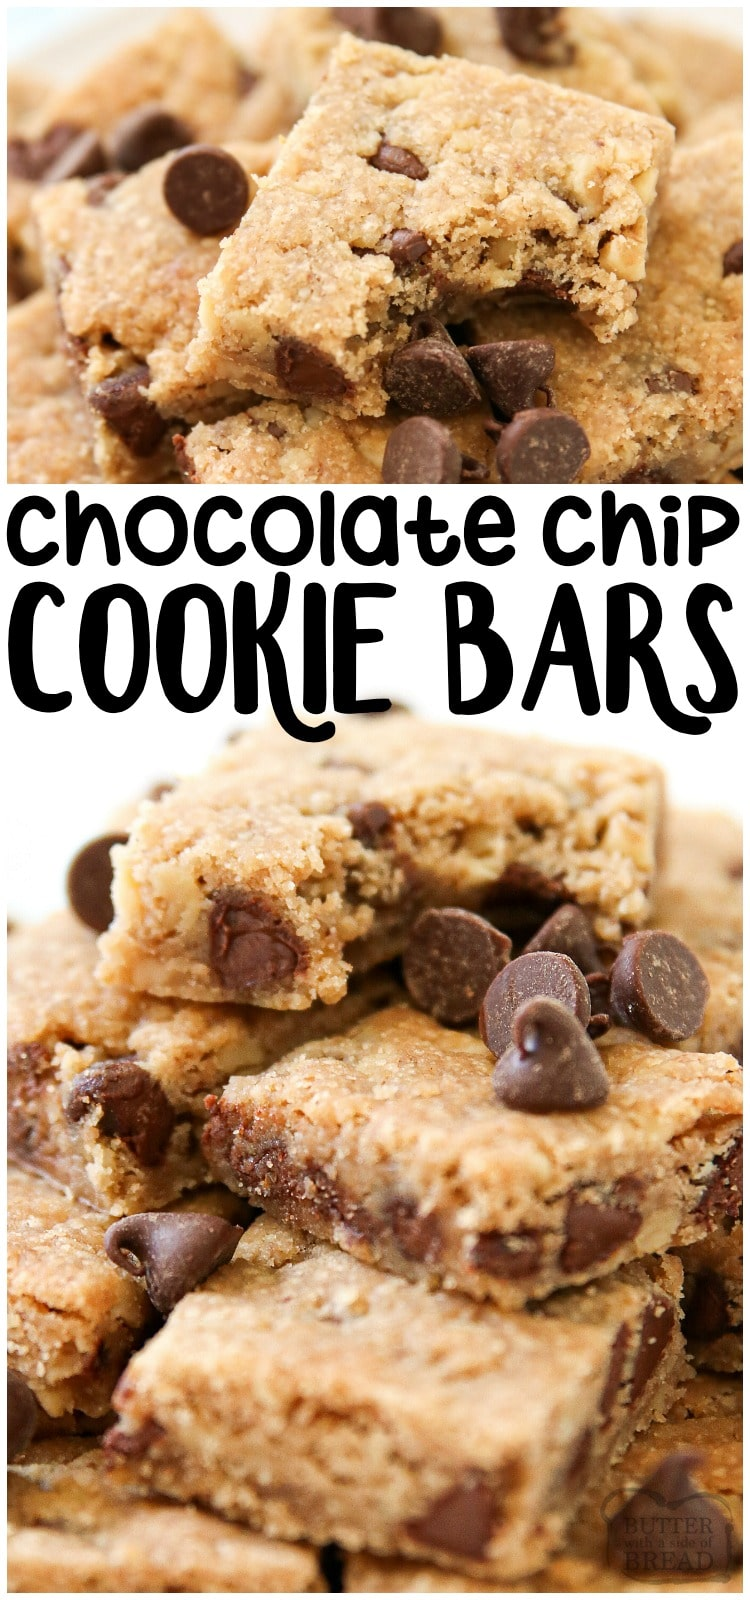 Easy Chocolate Chip Bars are the best chocolate chip cookie recipe made into a cookie bar recipe! This delicious treat is so easy, ready in 30 minutes, and is loved by everyone.